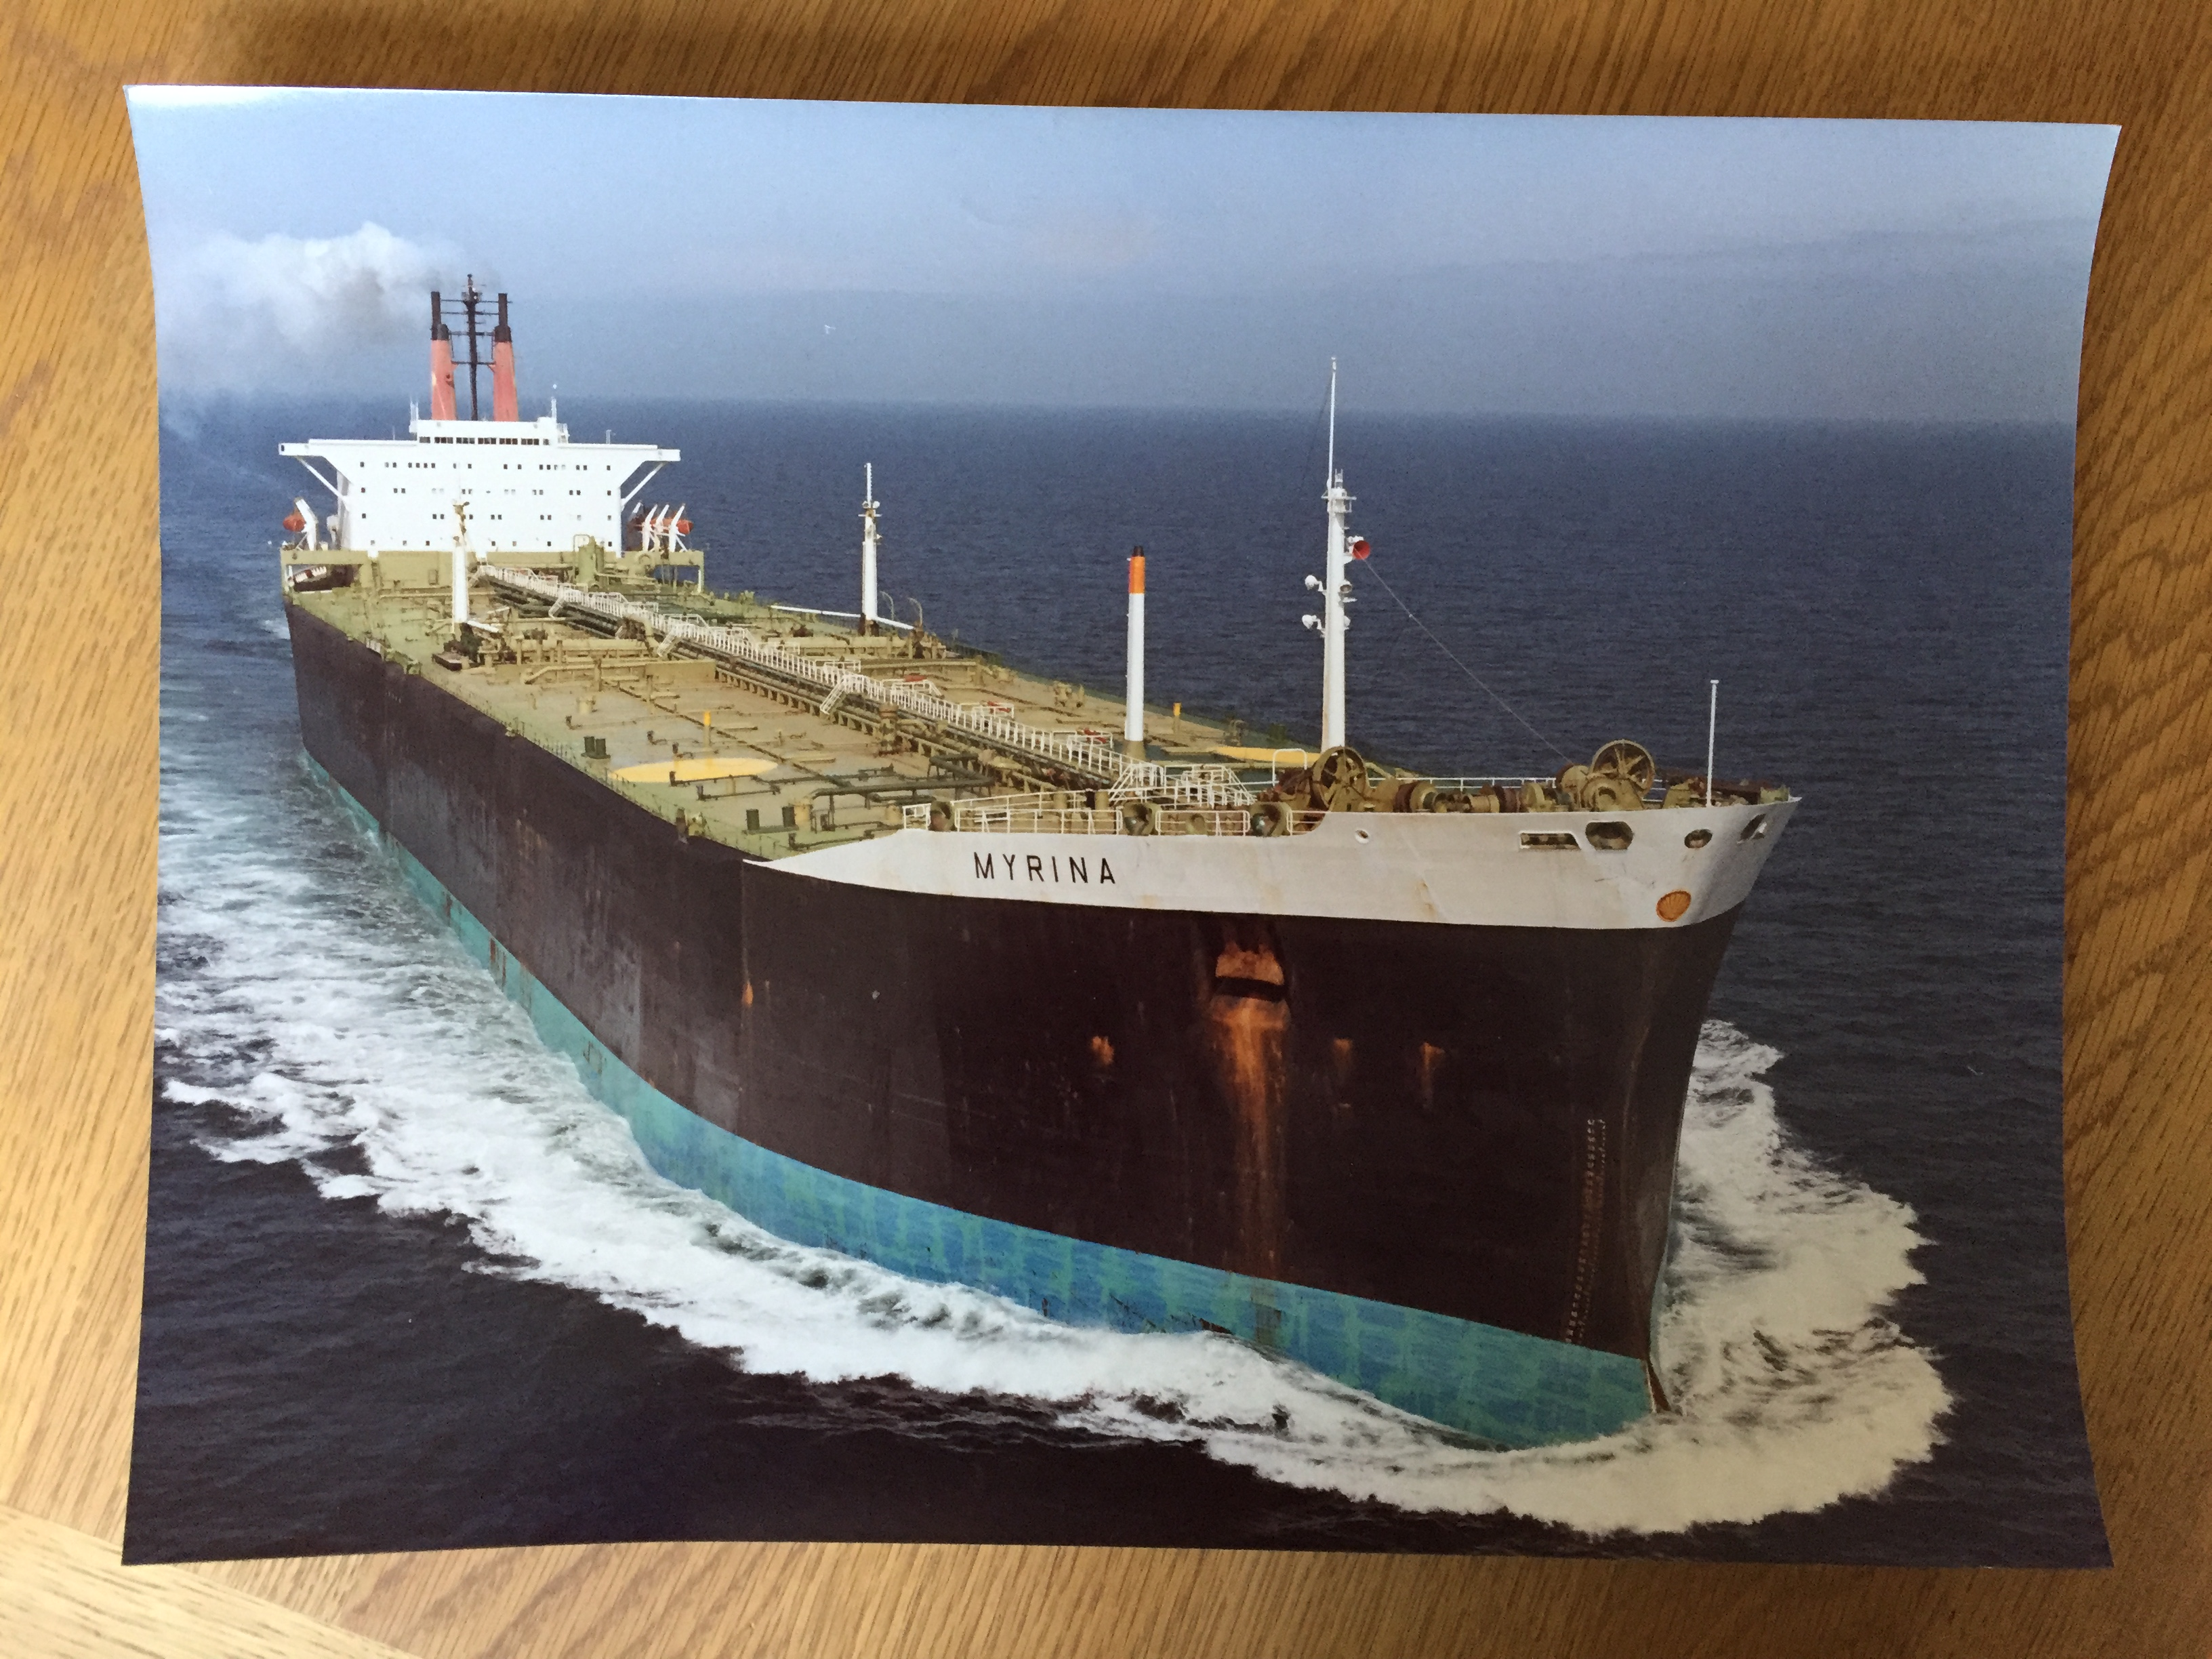 LARGE SIZE COLOUR PHOTOGRAPH OF THE CONTAINER VESSEL MYRINA